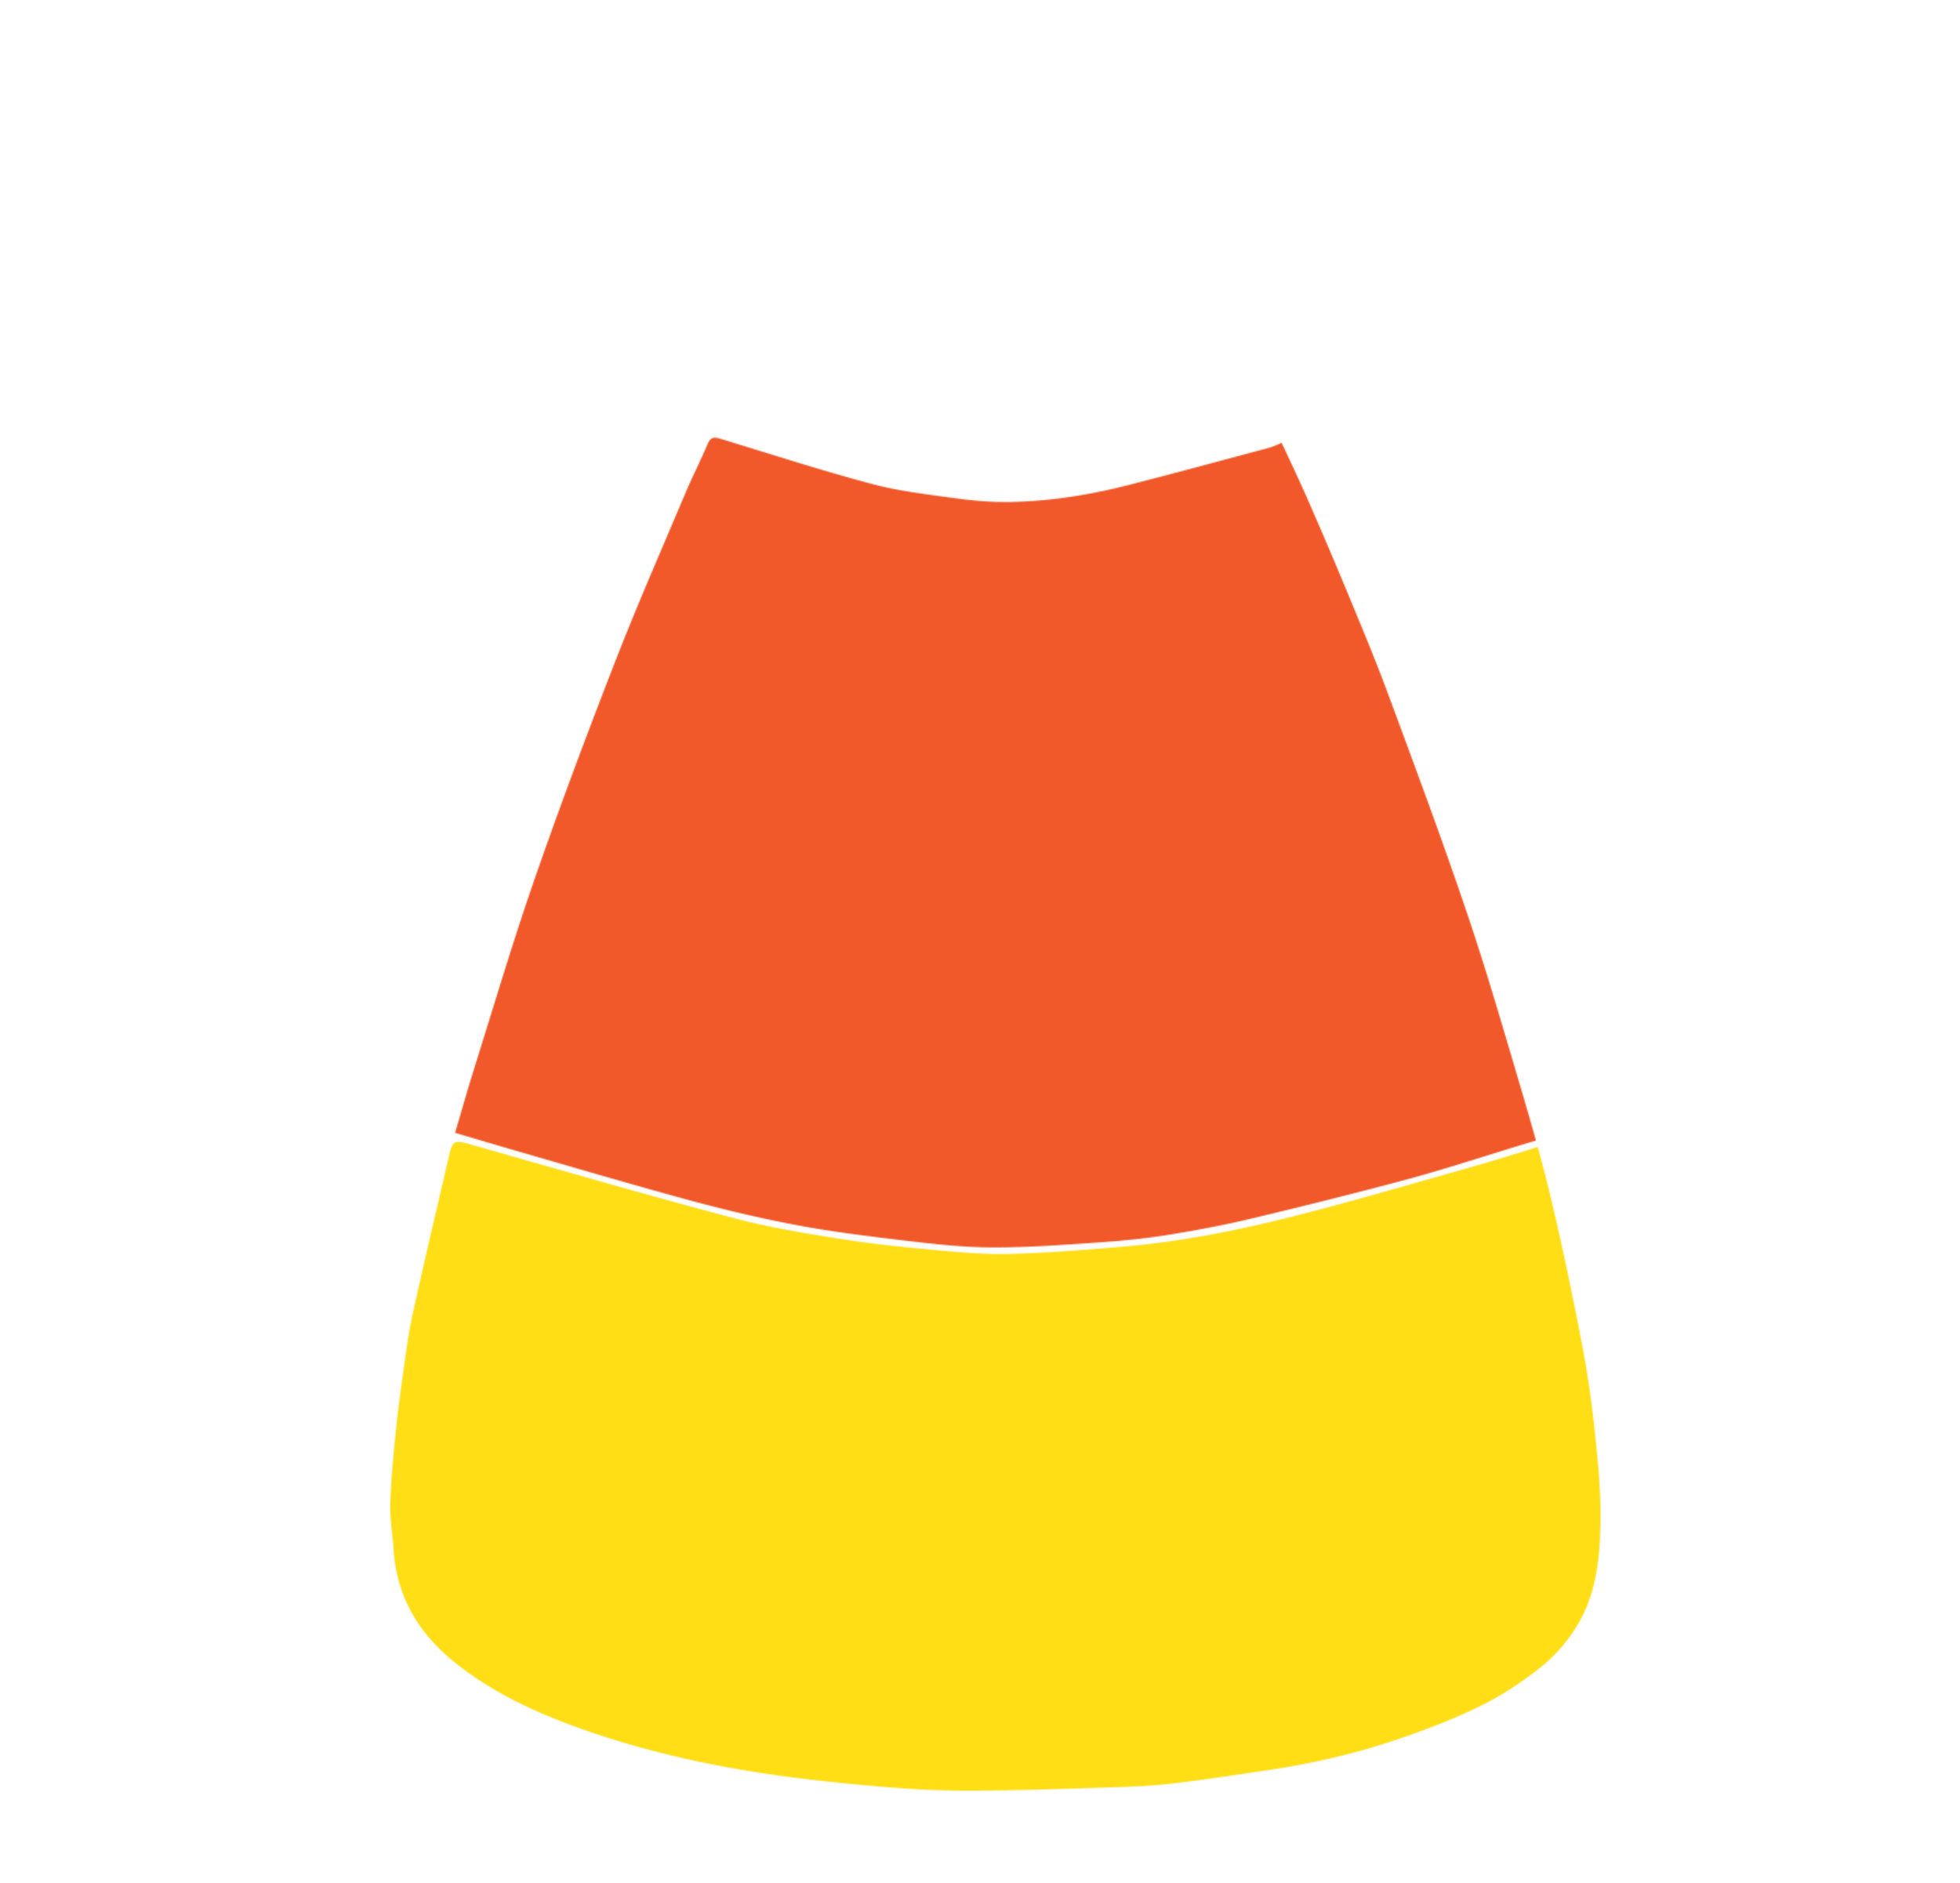 2500x2402 Candy Corn Border Clip Art Free Clipart Images